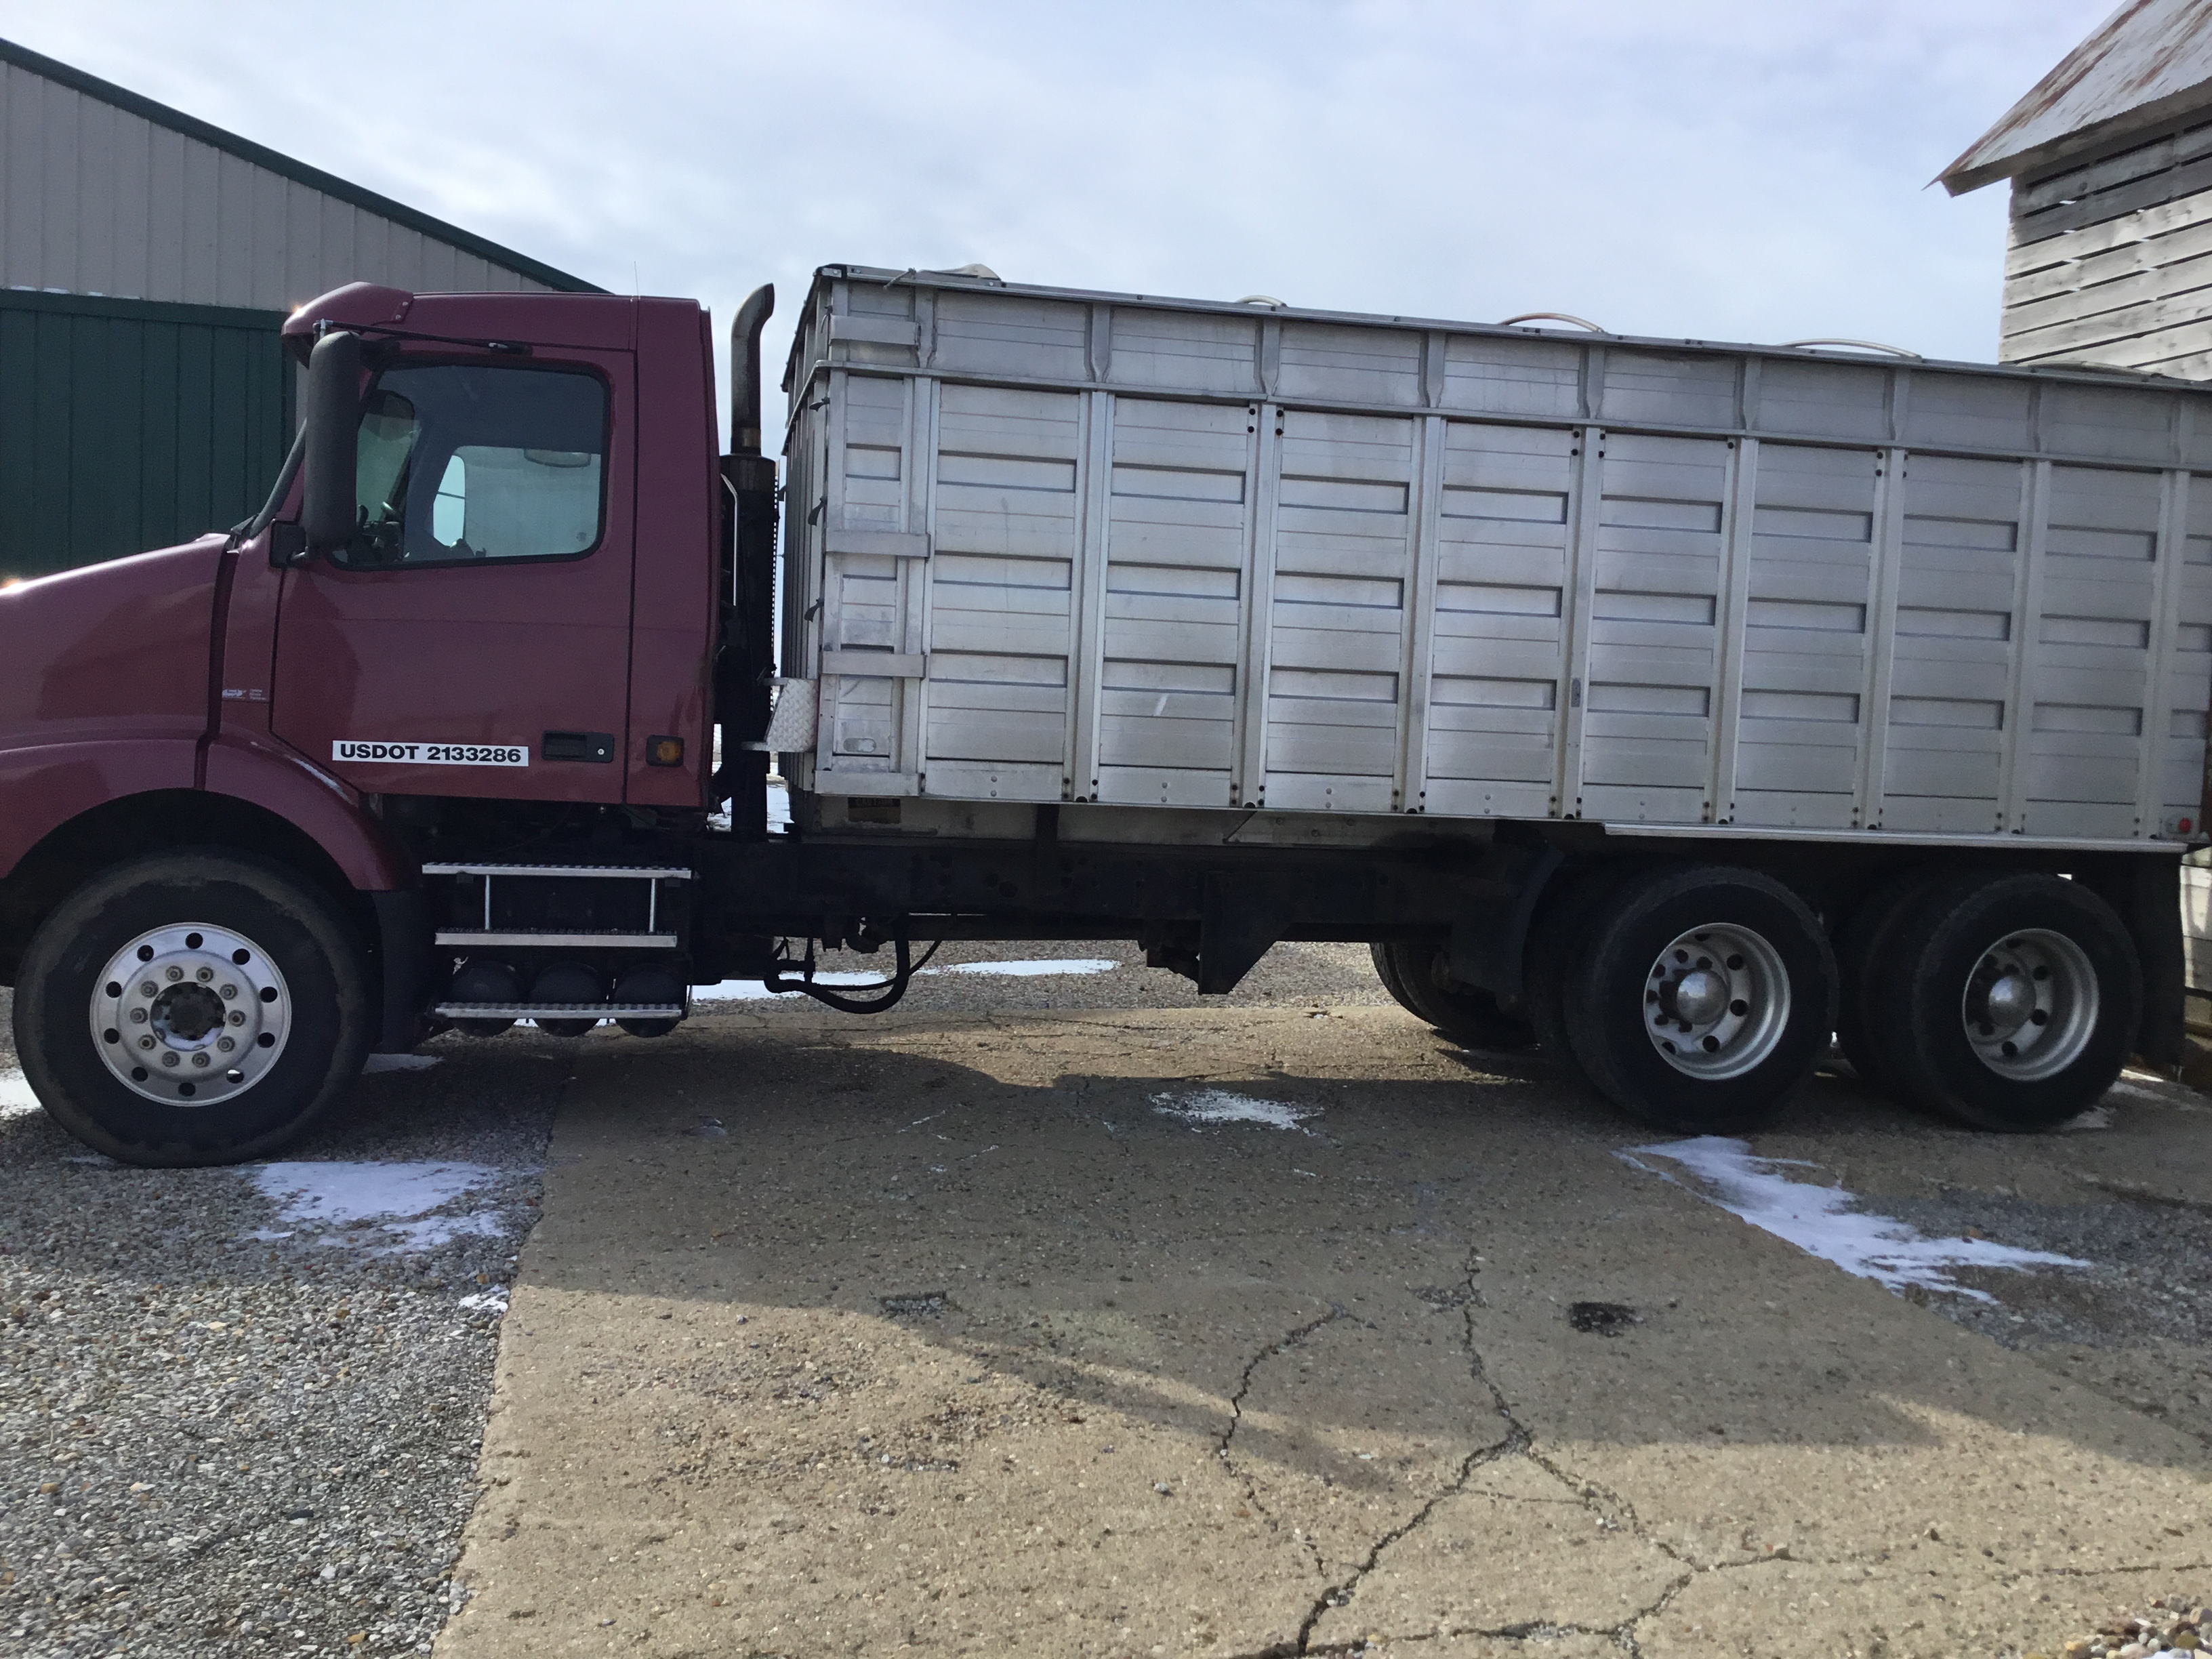 Lot 32 - 1996 Volvo Tandem, 10 Speed Transmission, 20 Ft. Aluminum Grain Bed, Cargo Doors, Air Ride